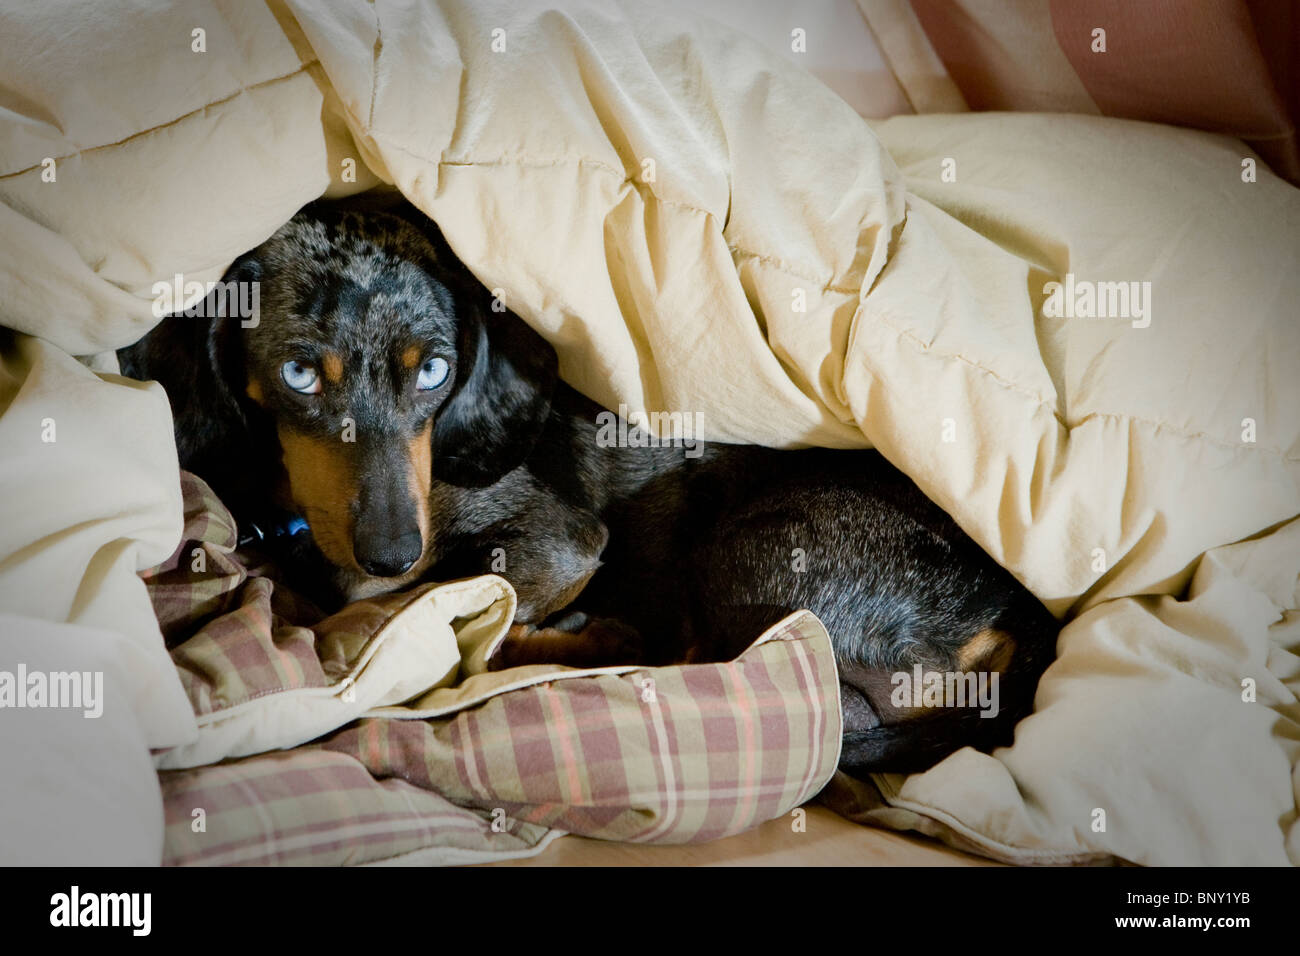 A Dapple Dachshund looking scolded. - Stock Image